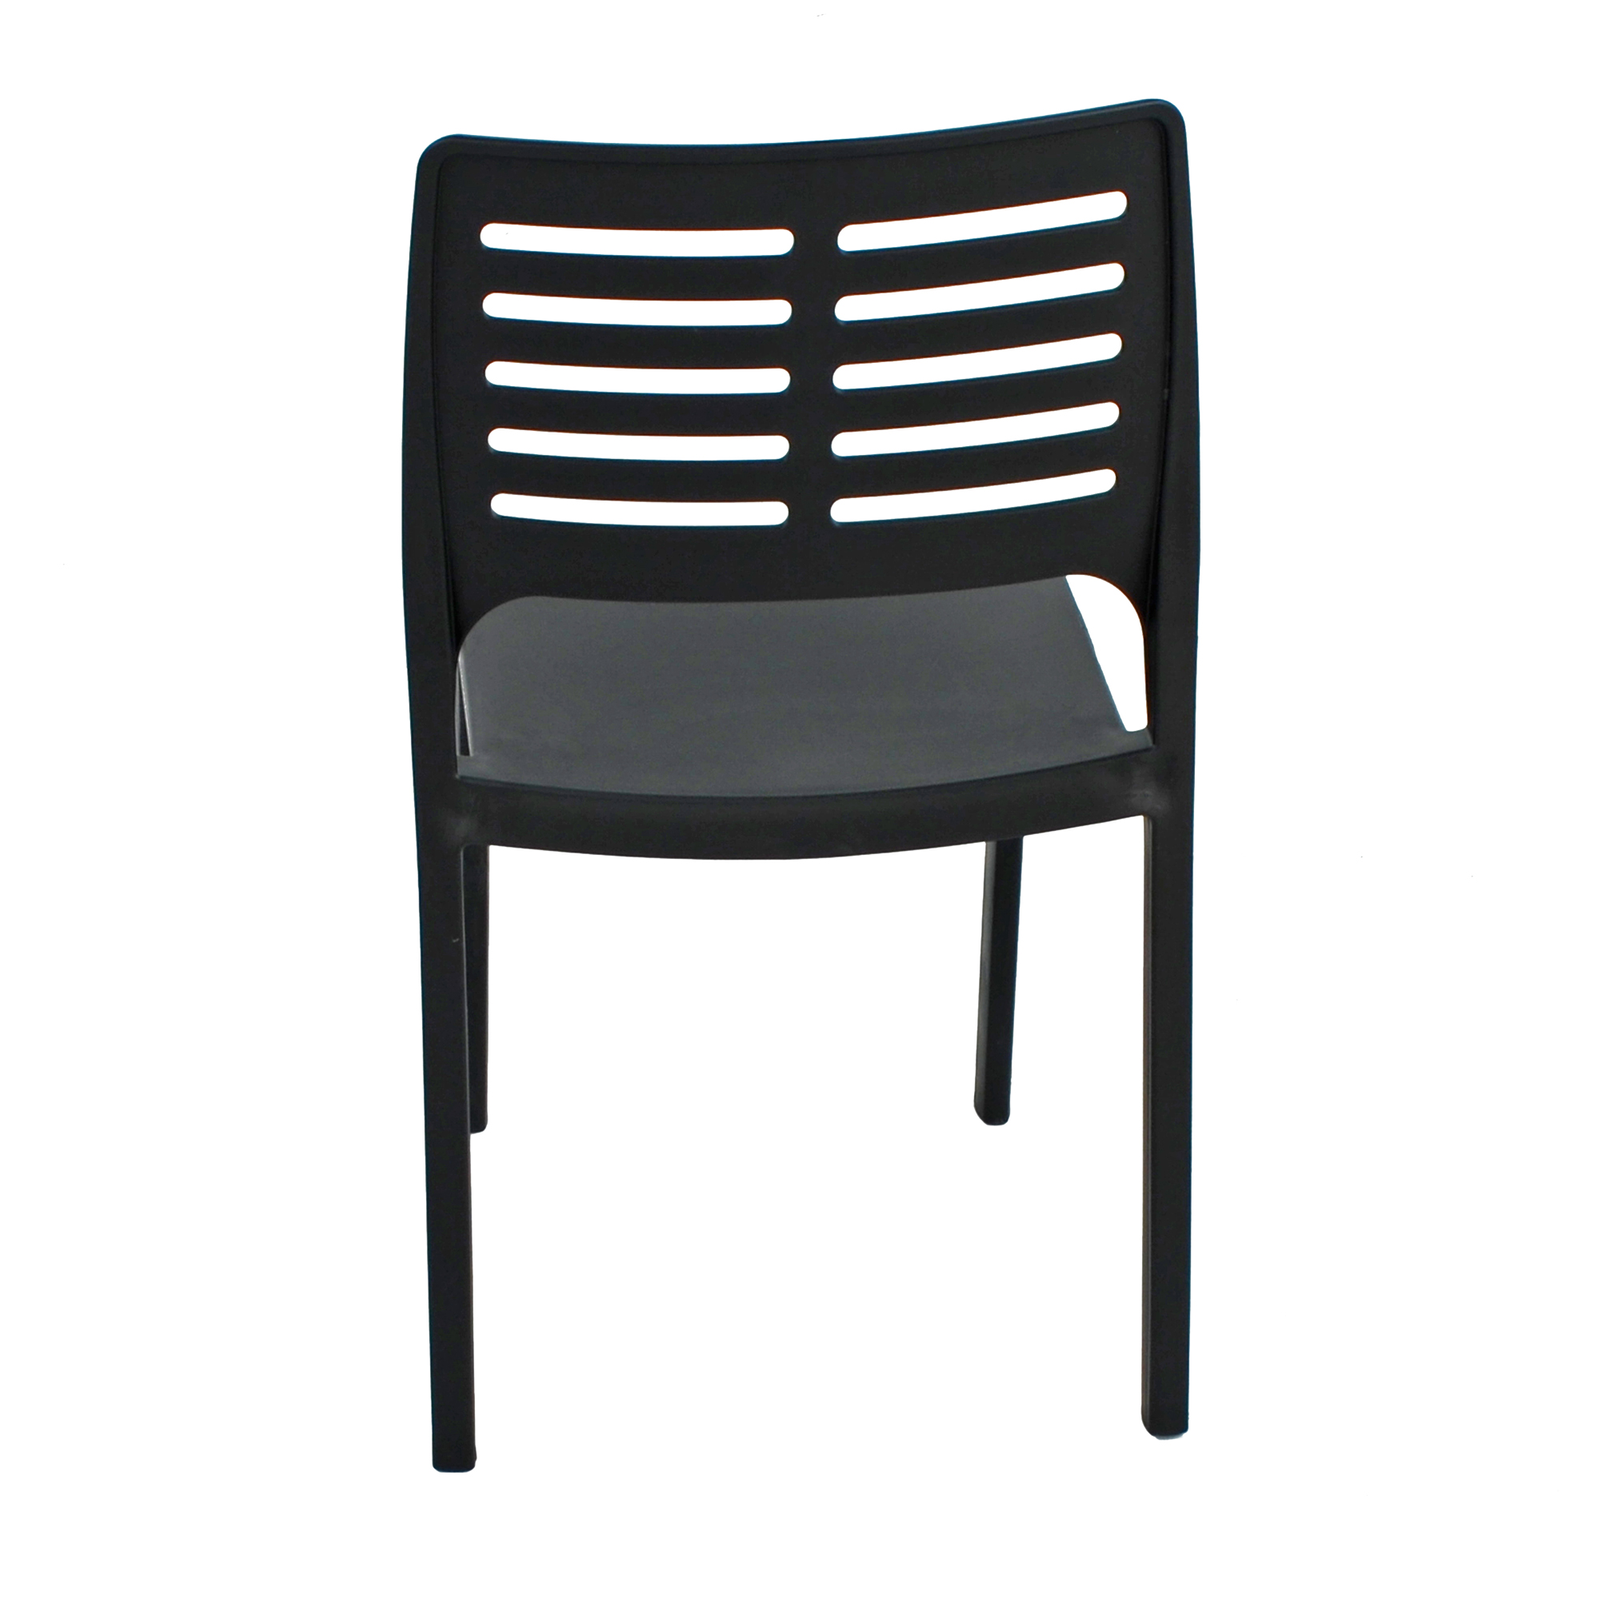 Trabella Mistral Chair Pack Of 2 in Anthracite